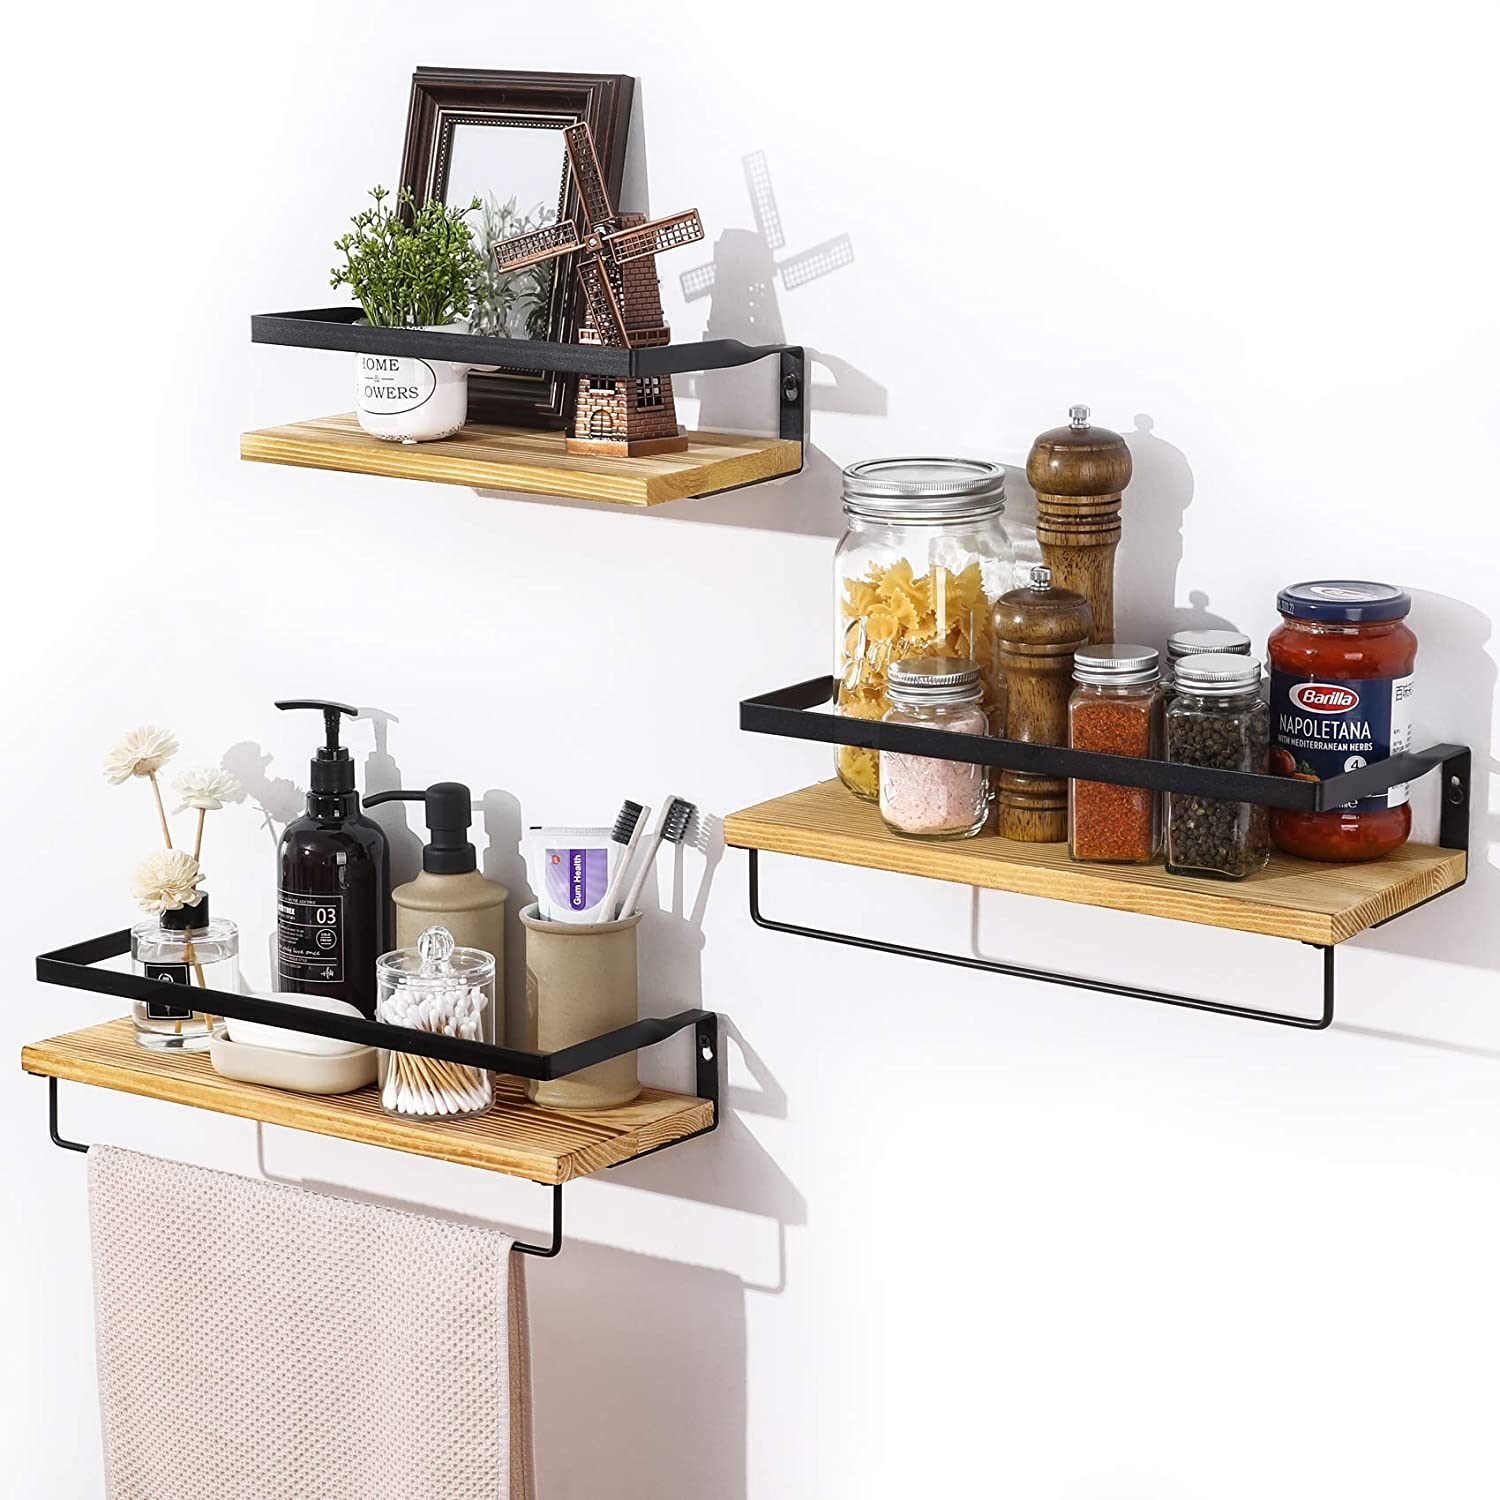 Brown 3 Set Pre-Installed Floating Shelves Wall Mounted Storage Wood Shelf with Towel Rack Over Toilet Office Rustic Decor Accessories for Bathroom Bedroom Kitchen